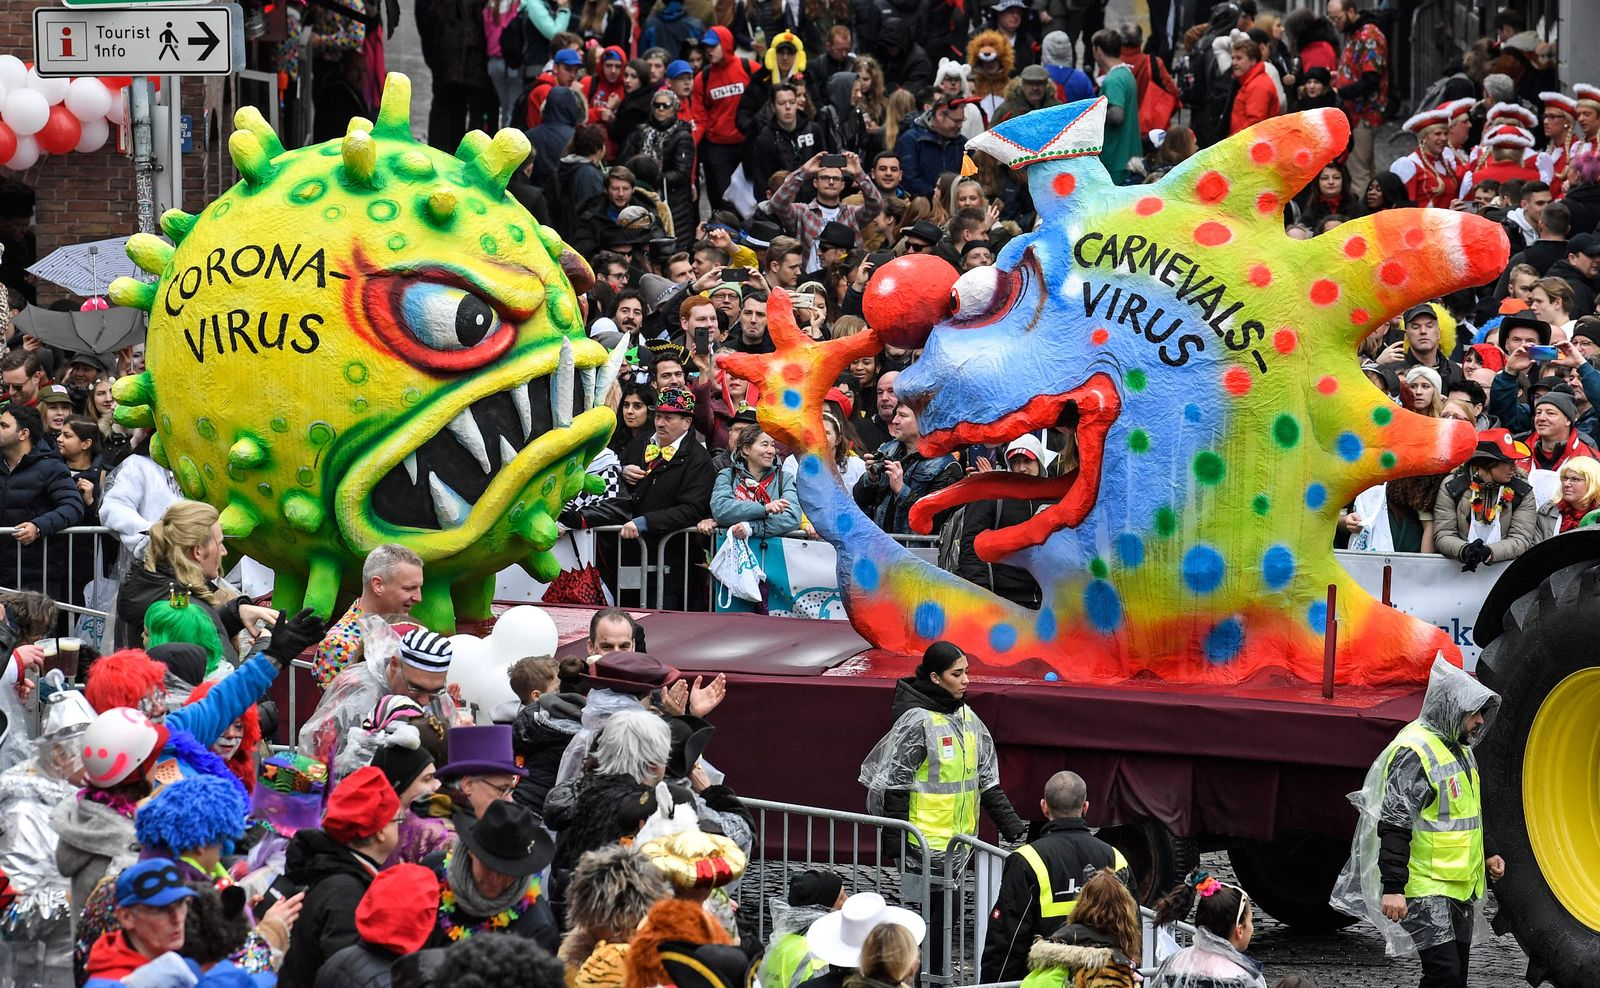 A carnival float depicts a carnival virus laughing at a corona virus during the traditional carnival parade in Duesseldorf, Germany, on Monday, Feb. 24, 2020. The foolish street spectacles in the carnival centers of Duesseldorf, Mainz and Cologne, watched by hundreds of thousands of people, are the highlights in Germany's carnival season on Rosemonday. (AP Photo/Martin Meissner)